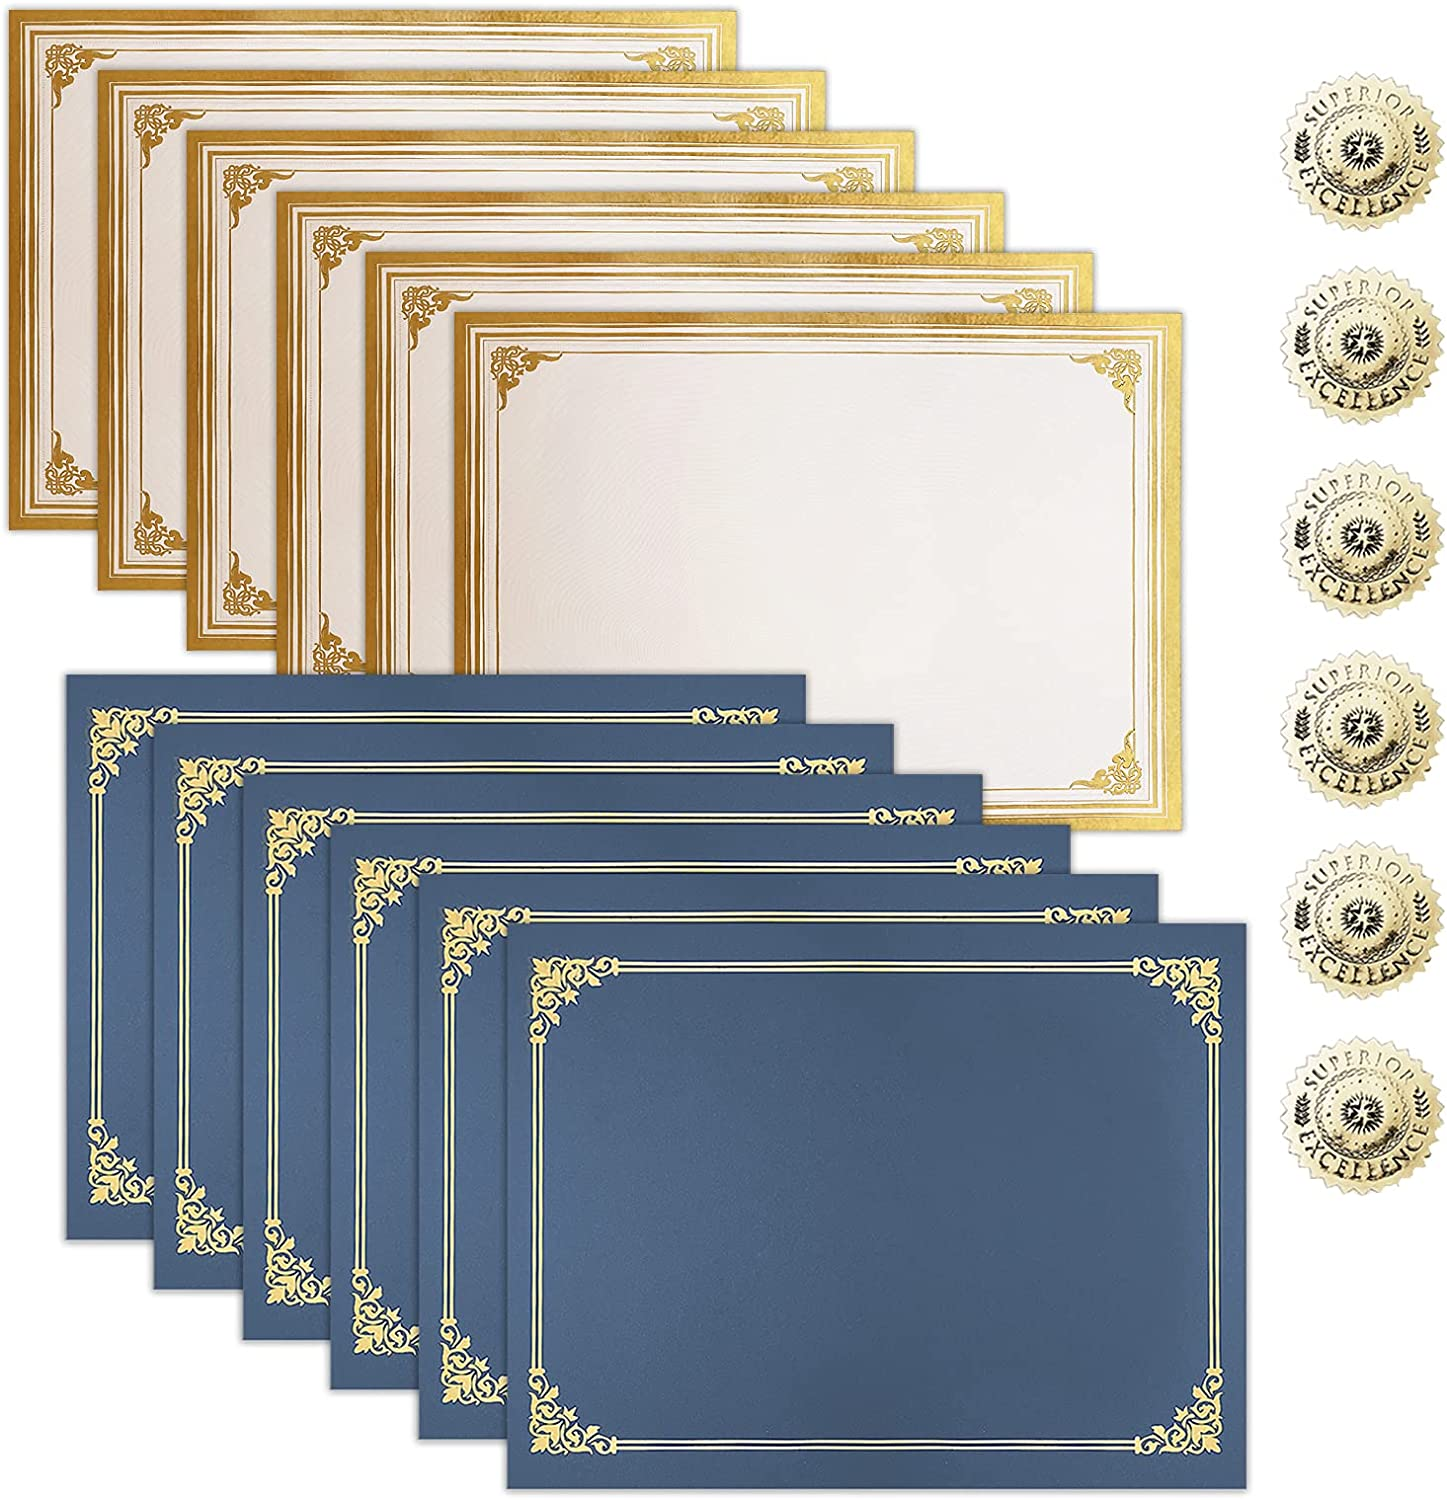 SUNEE Certificate Kit (6 Packs), Navy Blue Certificate Holders & Letter Size Certificate Papers & Gold Foil Award Seals, Certificate Paper and Holder Set for Diploma, Award, Accomplishment